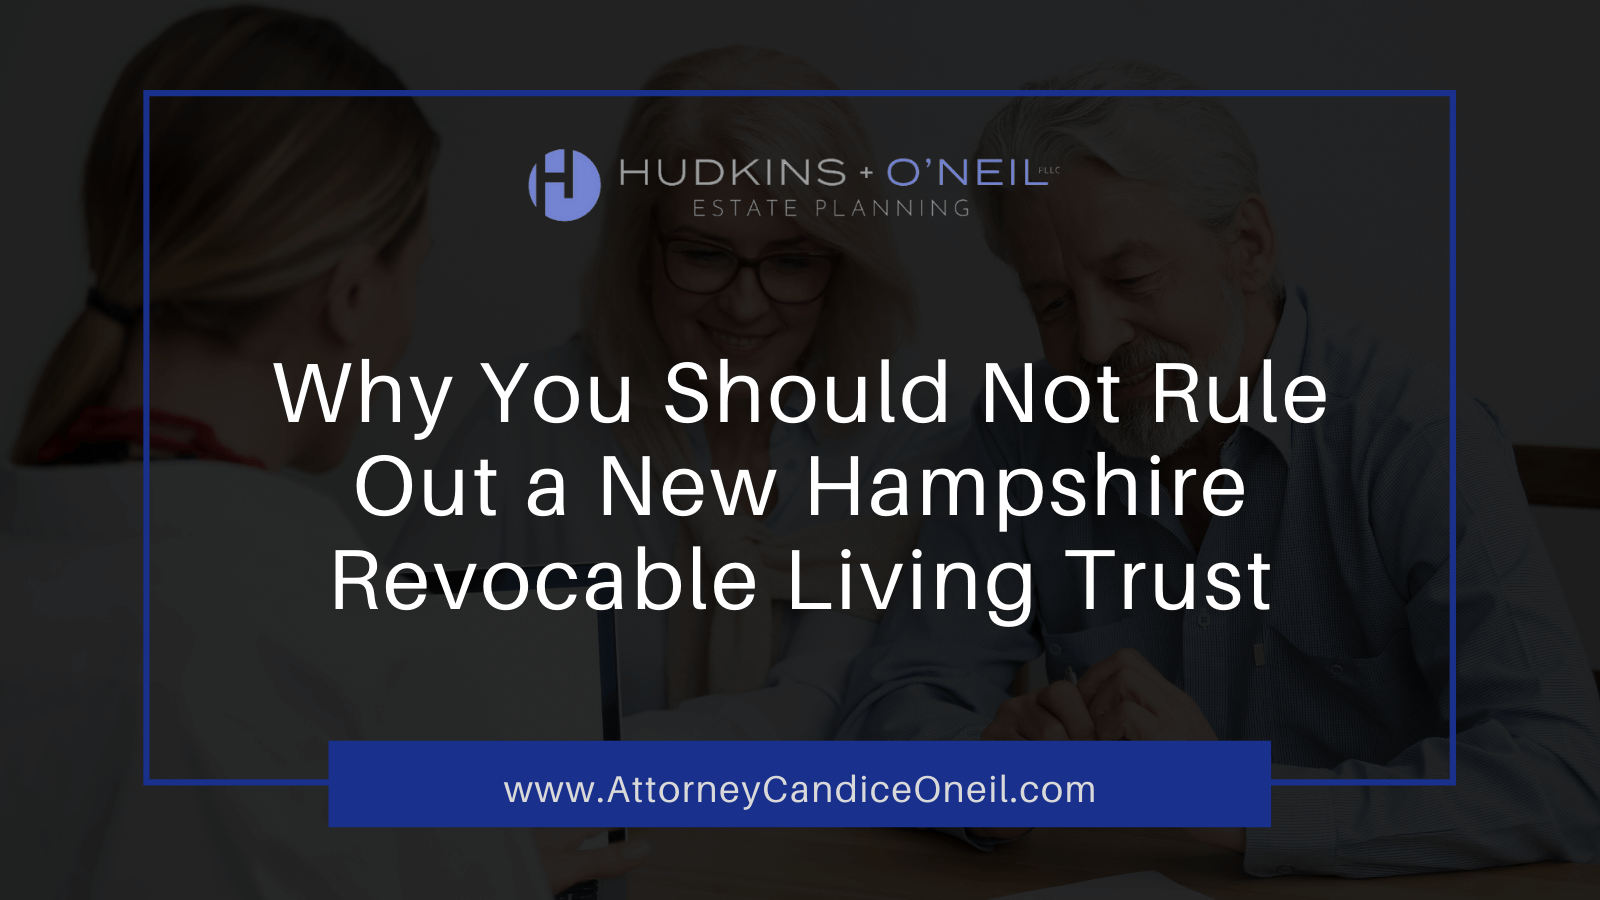 Why You Shouldn't Rule Out a New Hampshire Revocable Living Trust